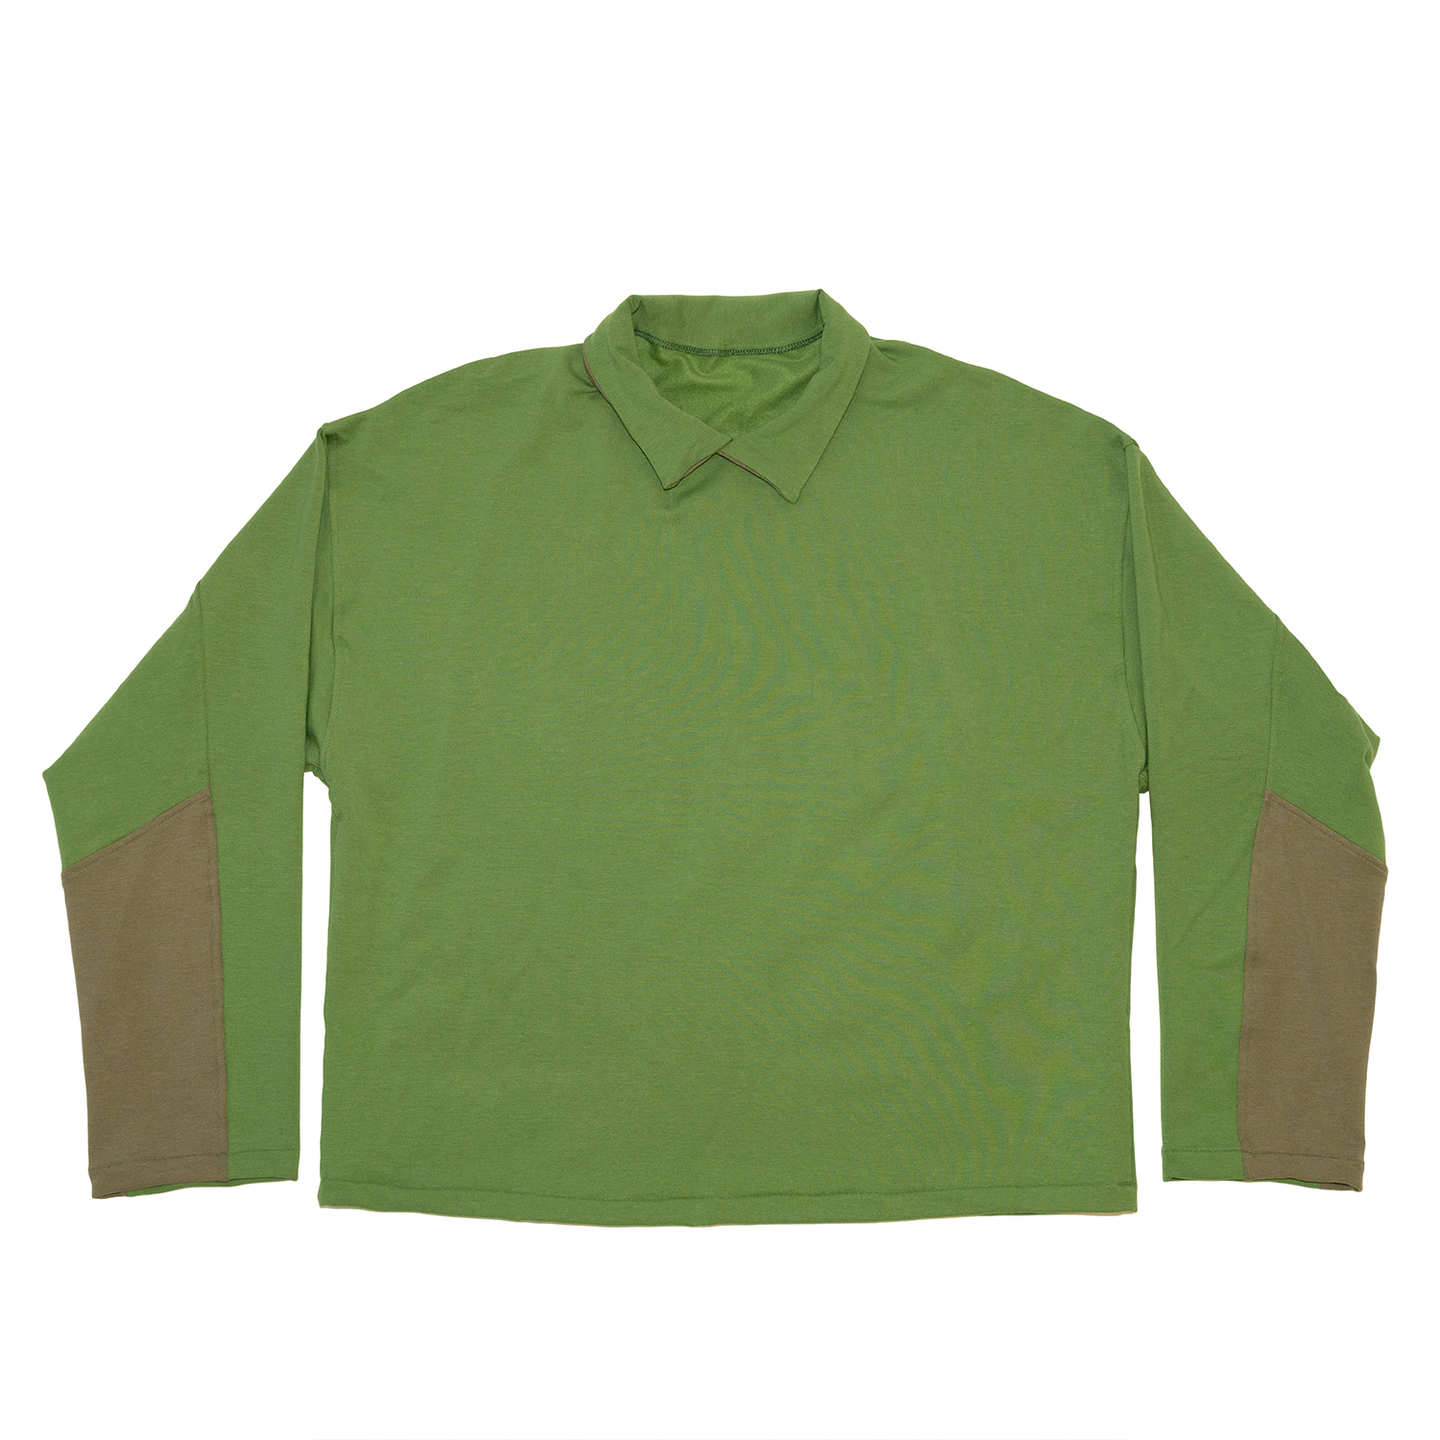 Collared Crewneck in Grass